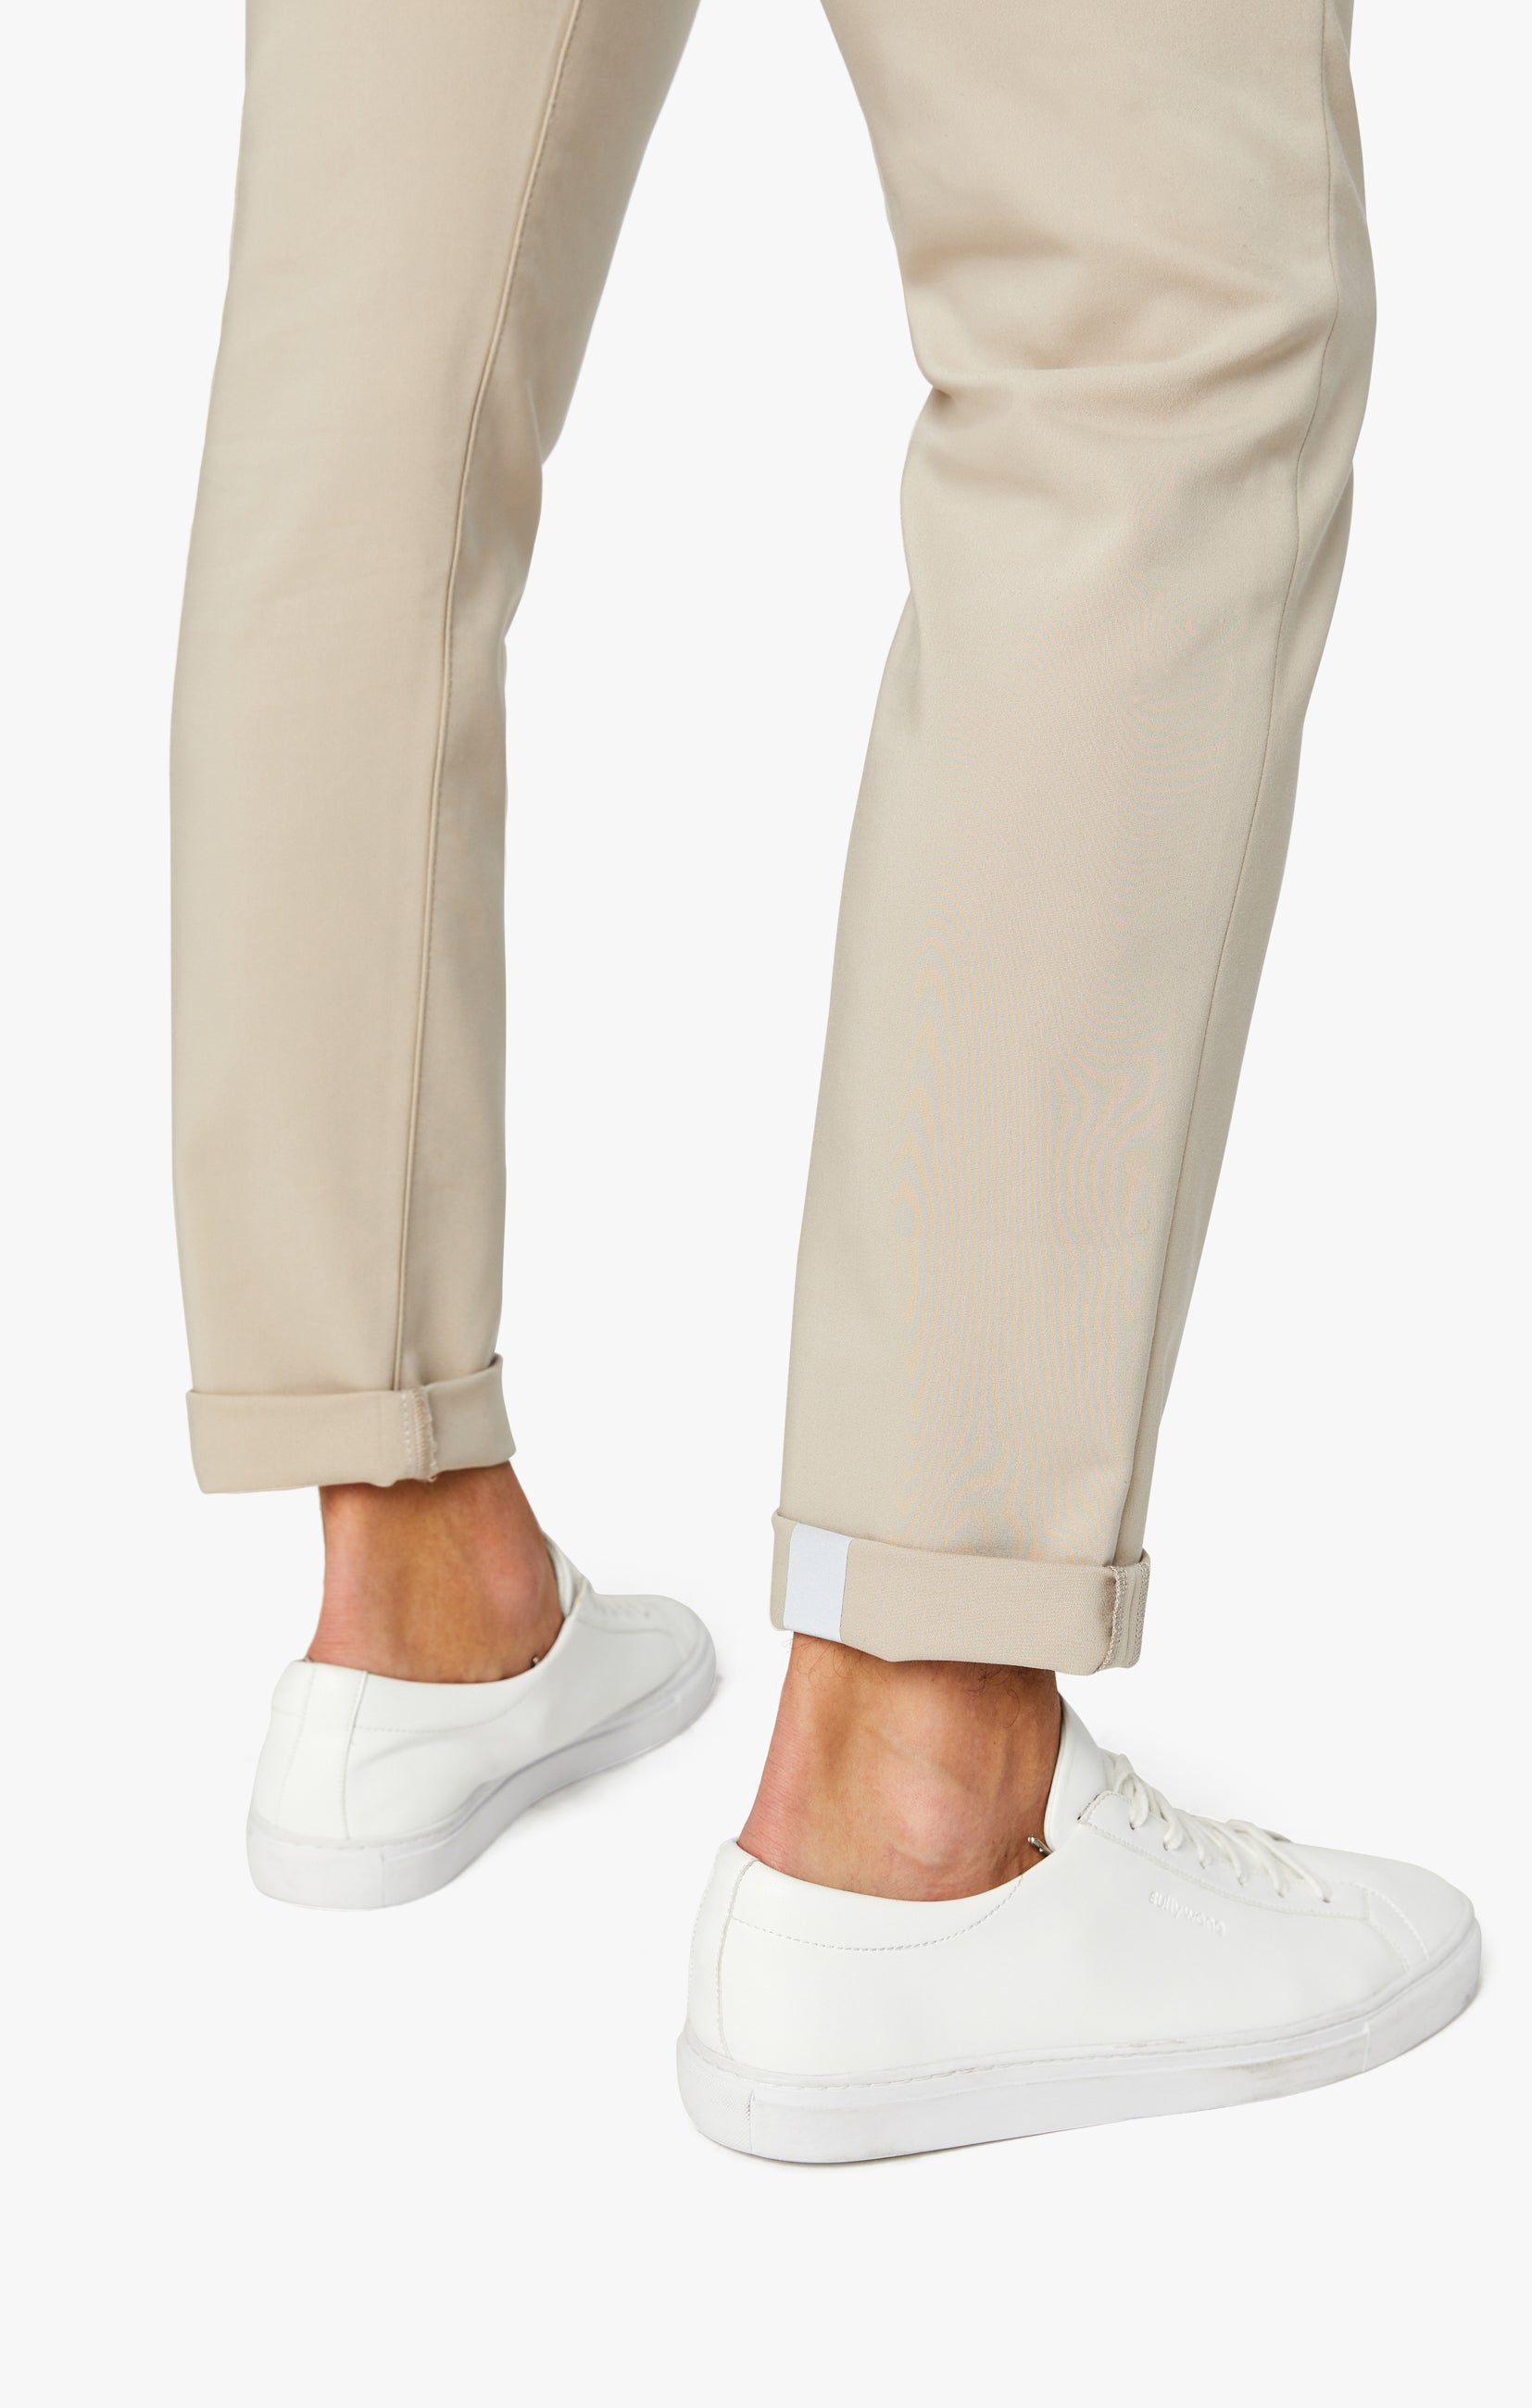 Courage Straight Leg Commuter Pants In Desert Image 6